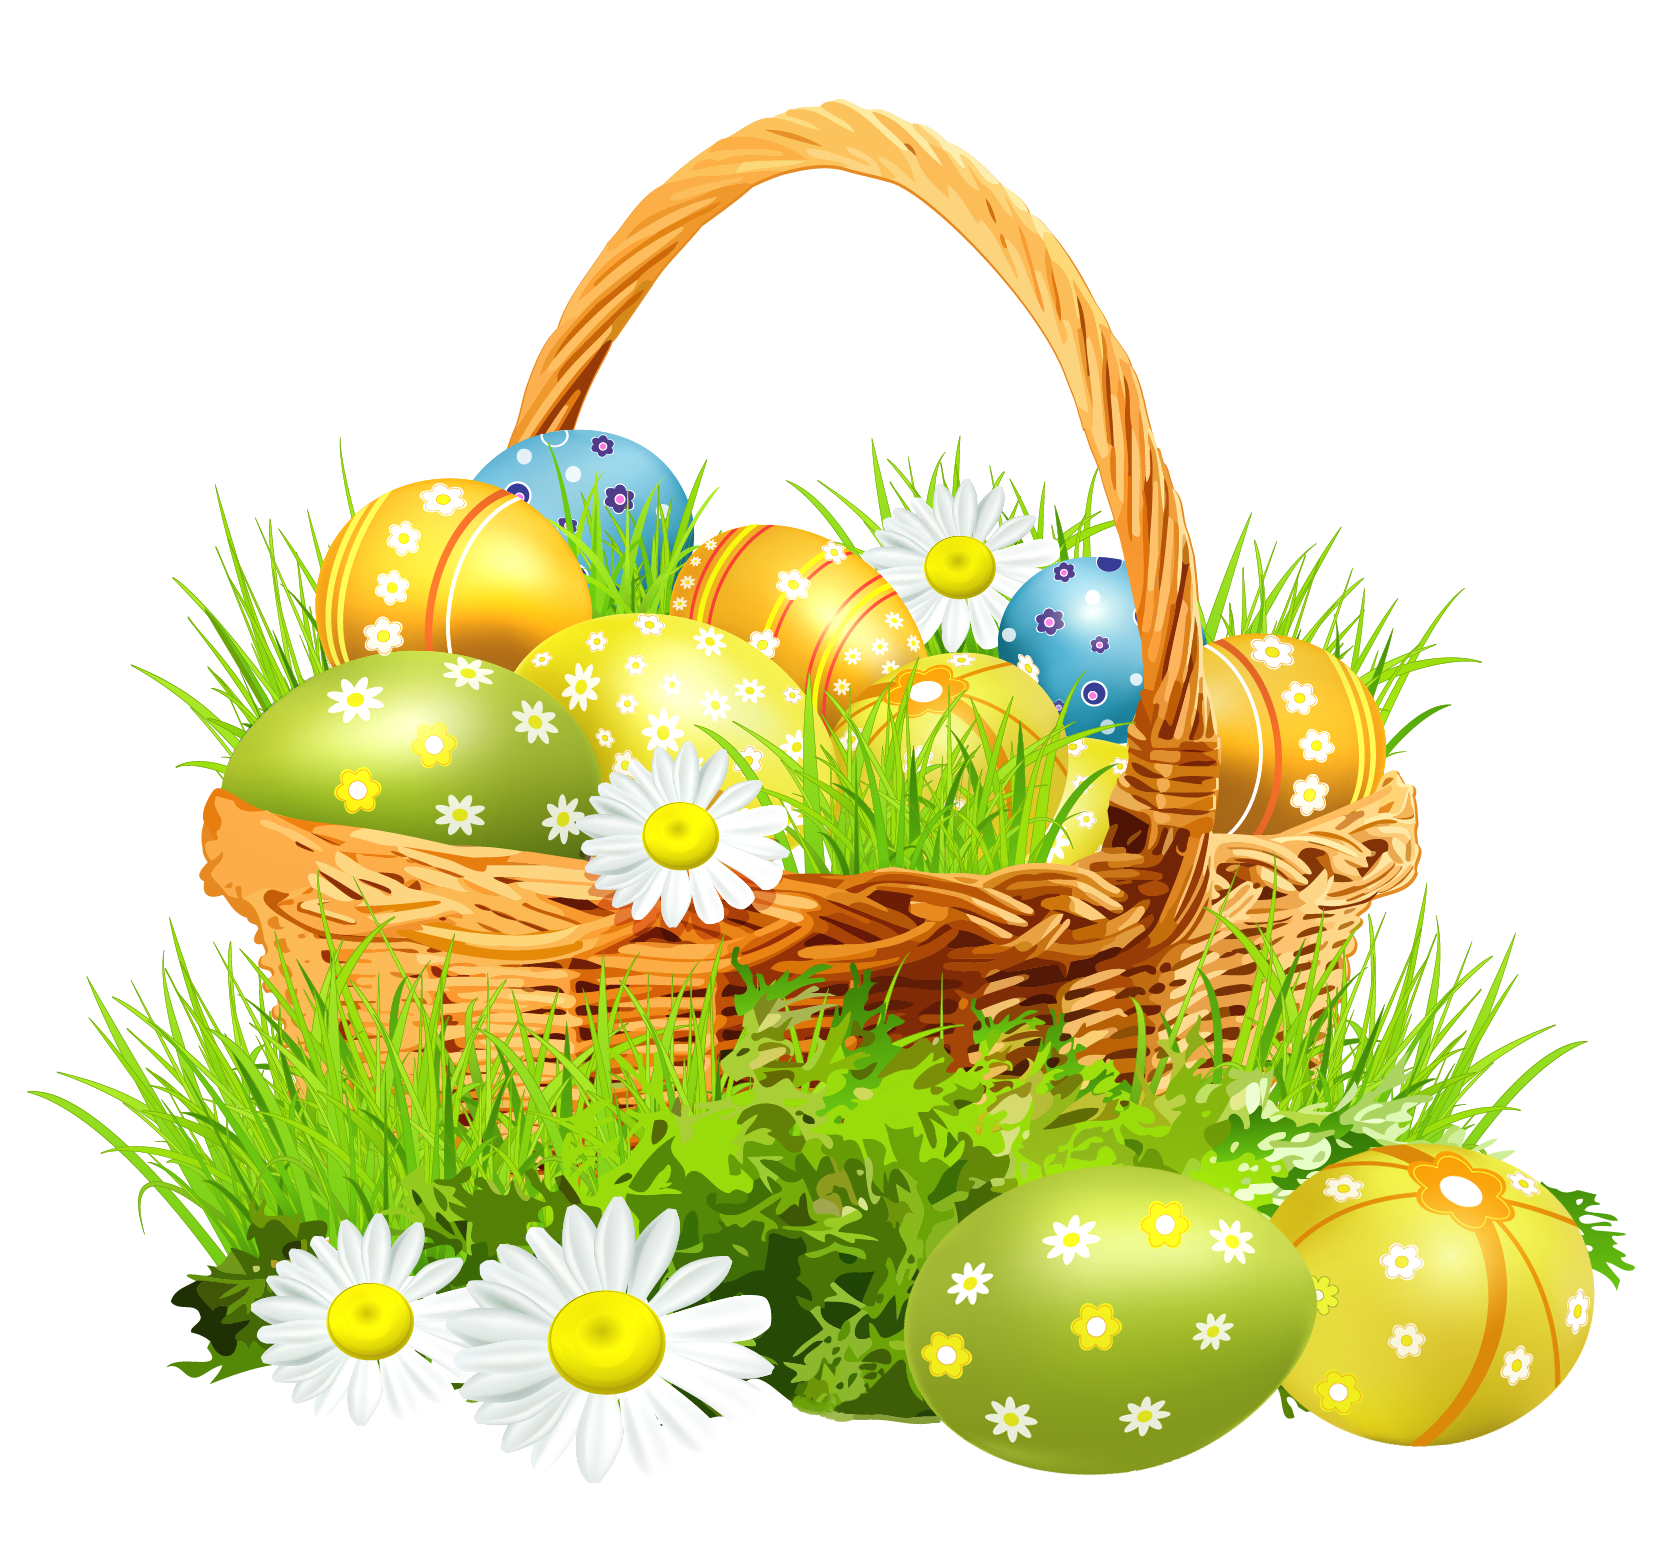 Happy easter basket clipart jpg black and white stock Free easter basket clipart - ClipartFest jpg black and white stock